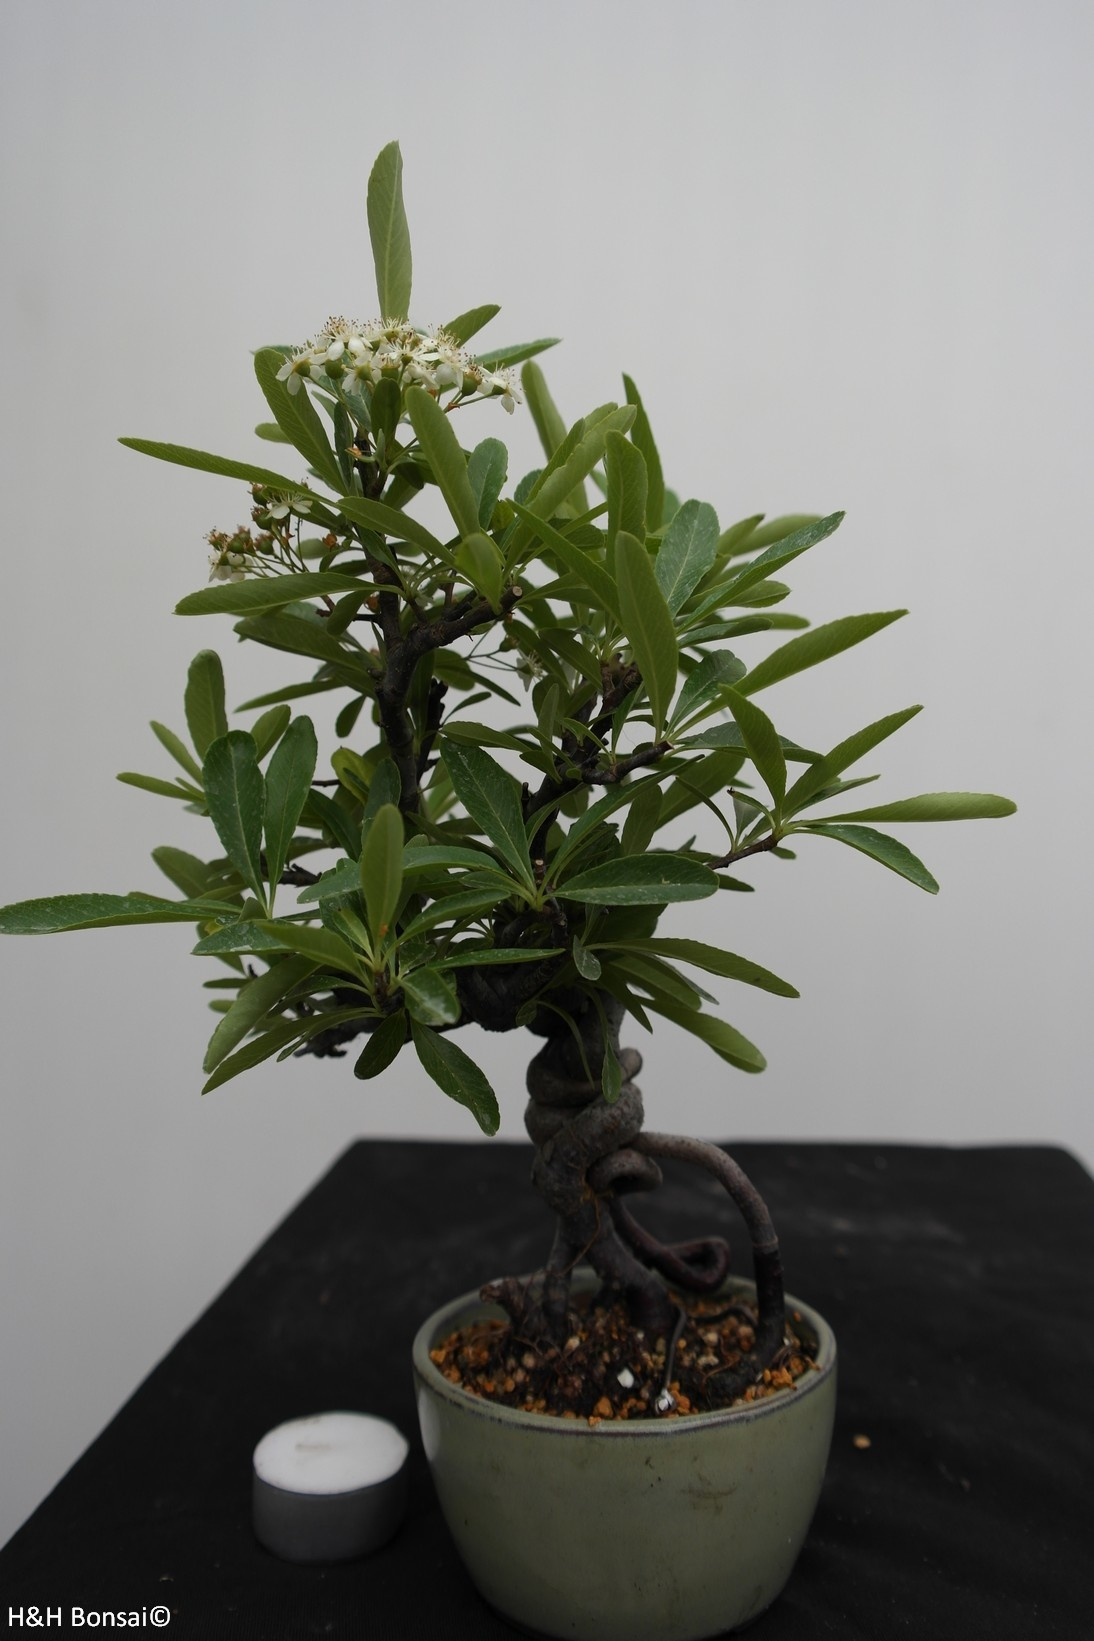 Bonsai Buisson ardent, Pyracantha, no. 7525